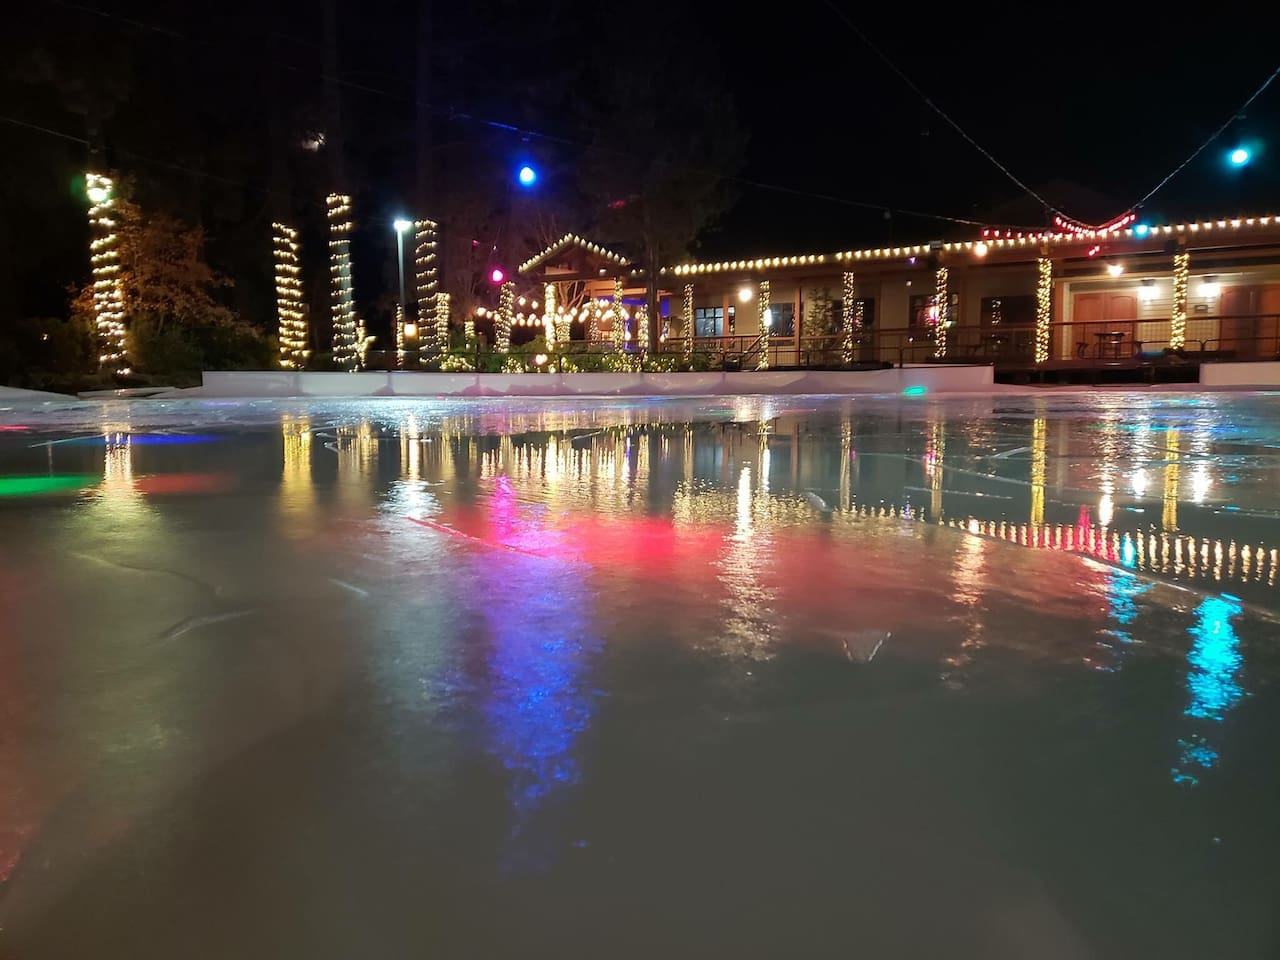 Family friendly ice-skating at the Seventh Mountain resort!